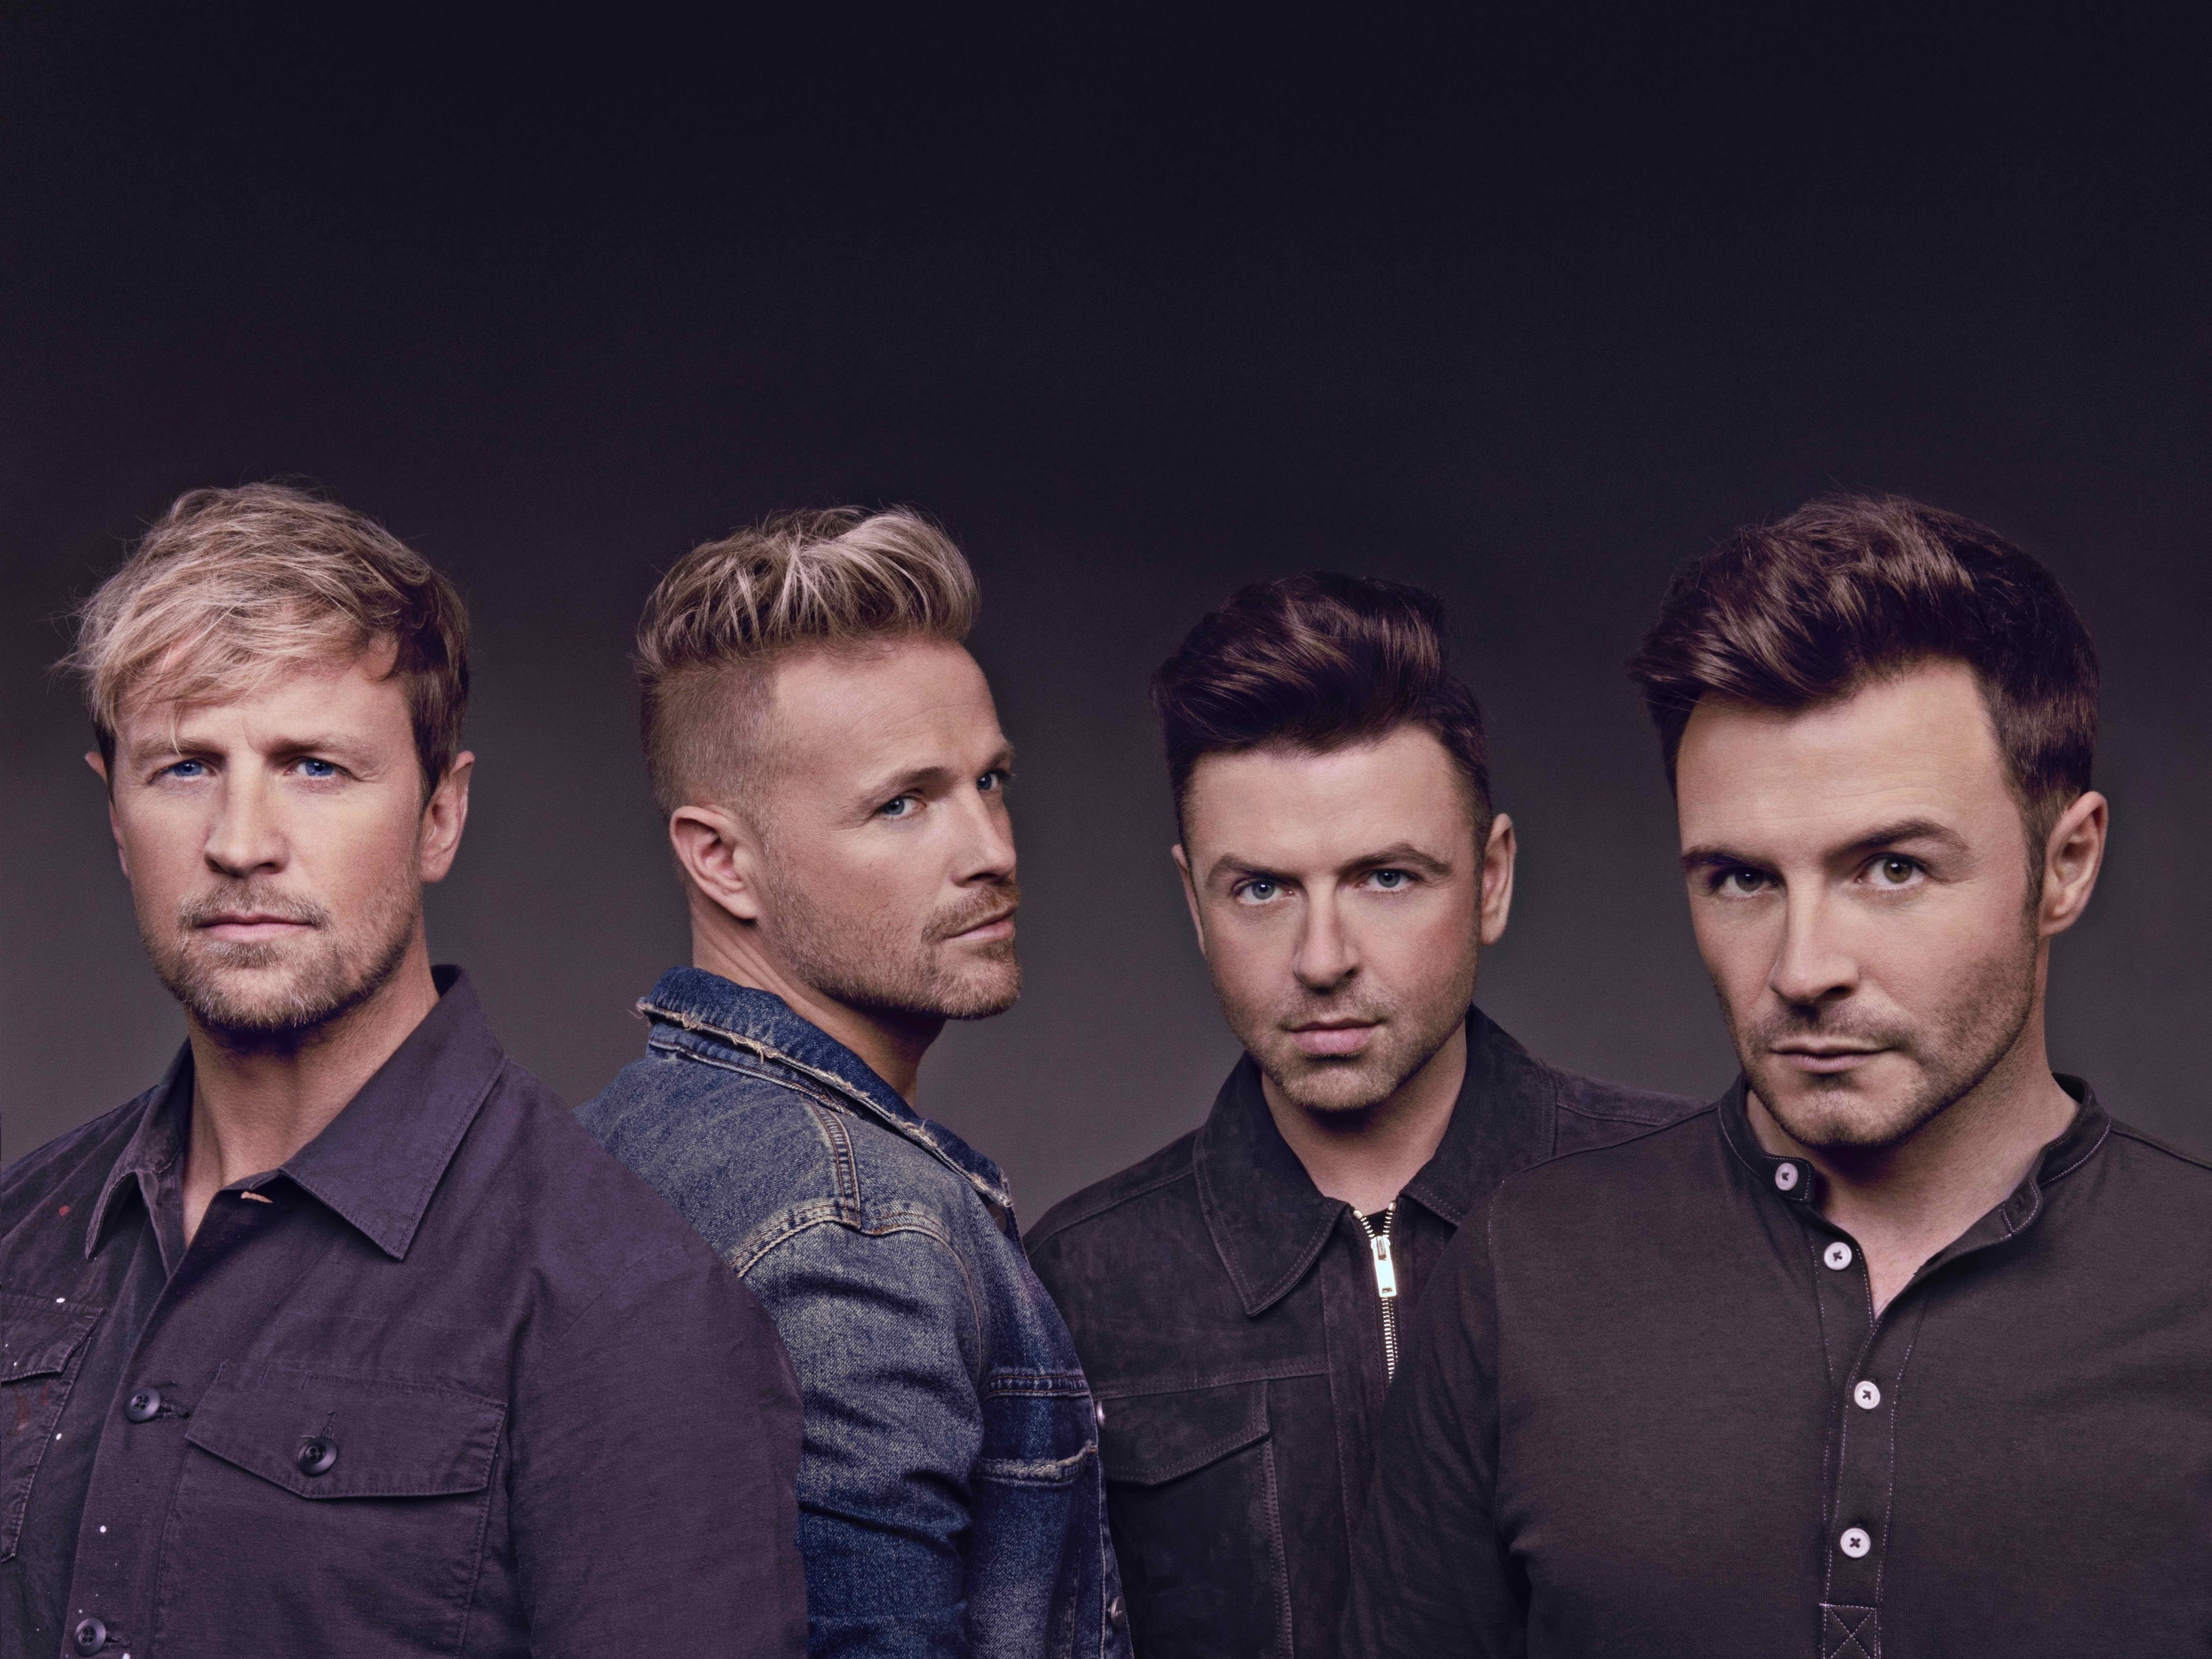 One of the biggest boybands of all-time Westlife is heading to Macau this July